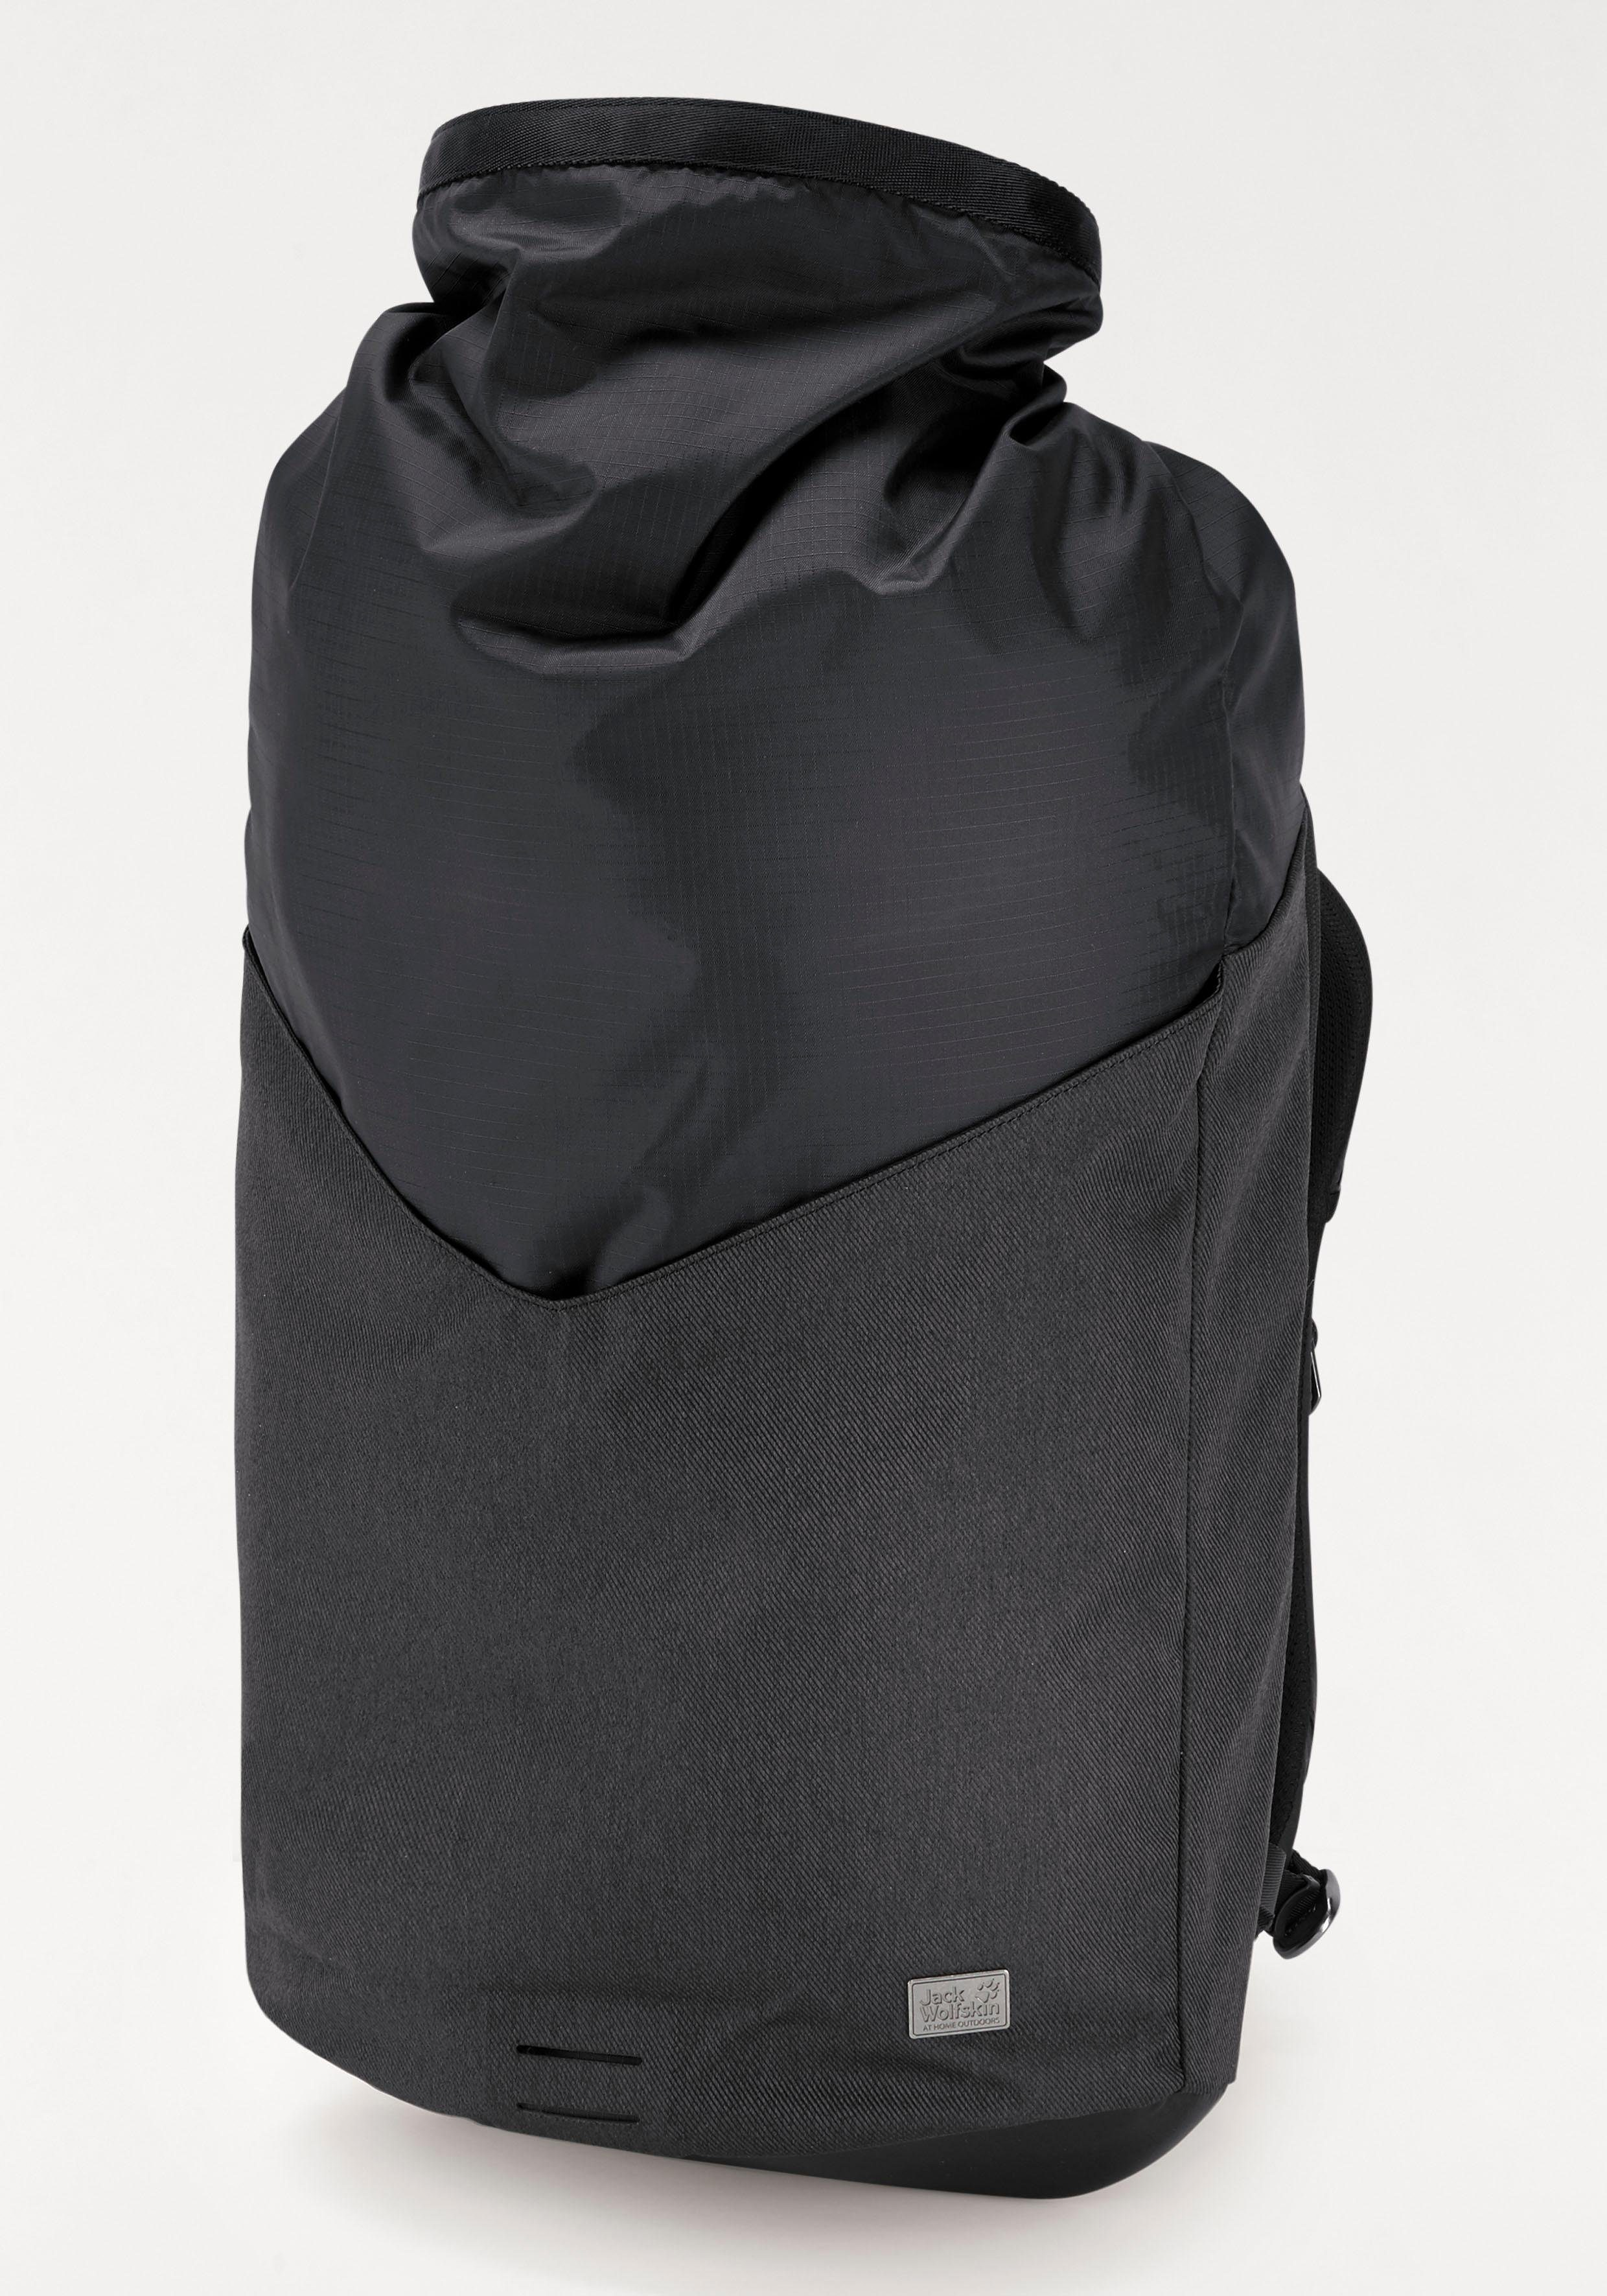 Jack Wolfskin Tagesrucksack »WOOL TECH GYM PACK«